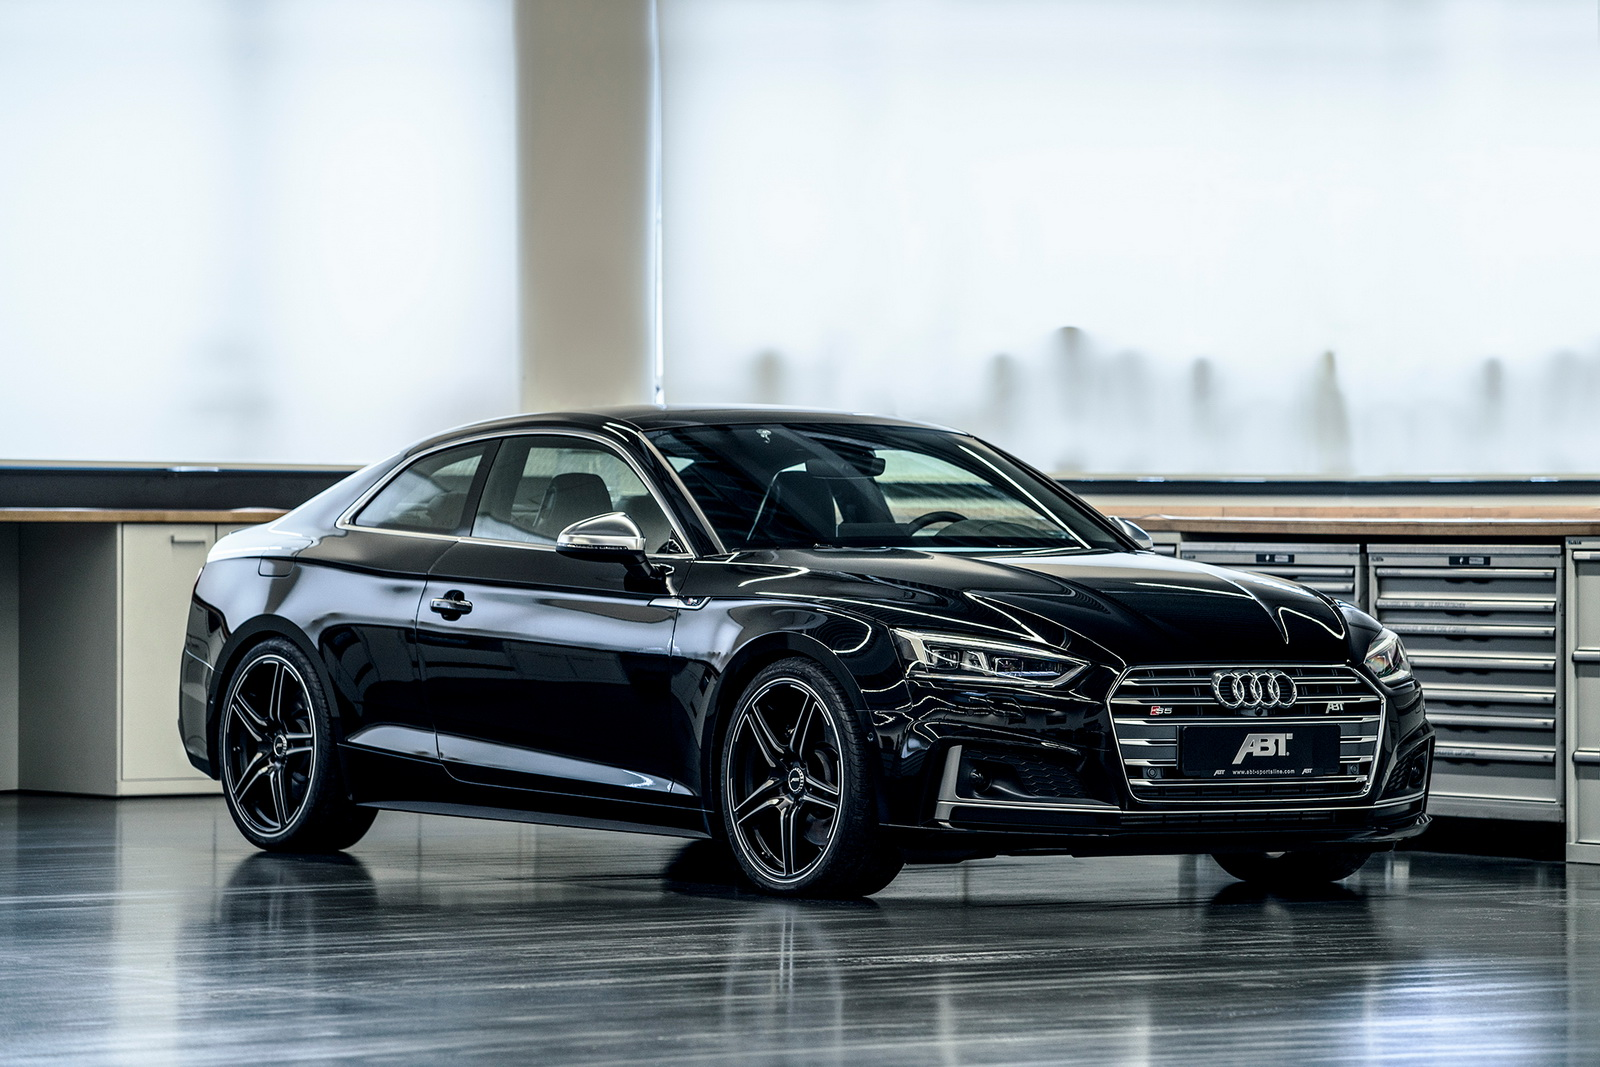 ABT S5 Coupe by ABT (1)